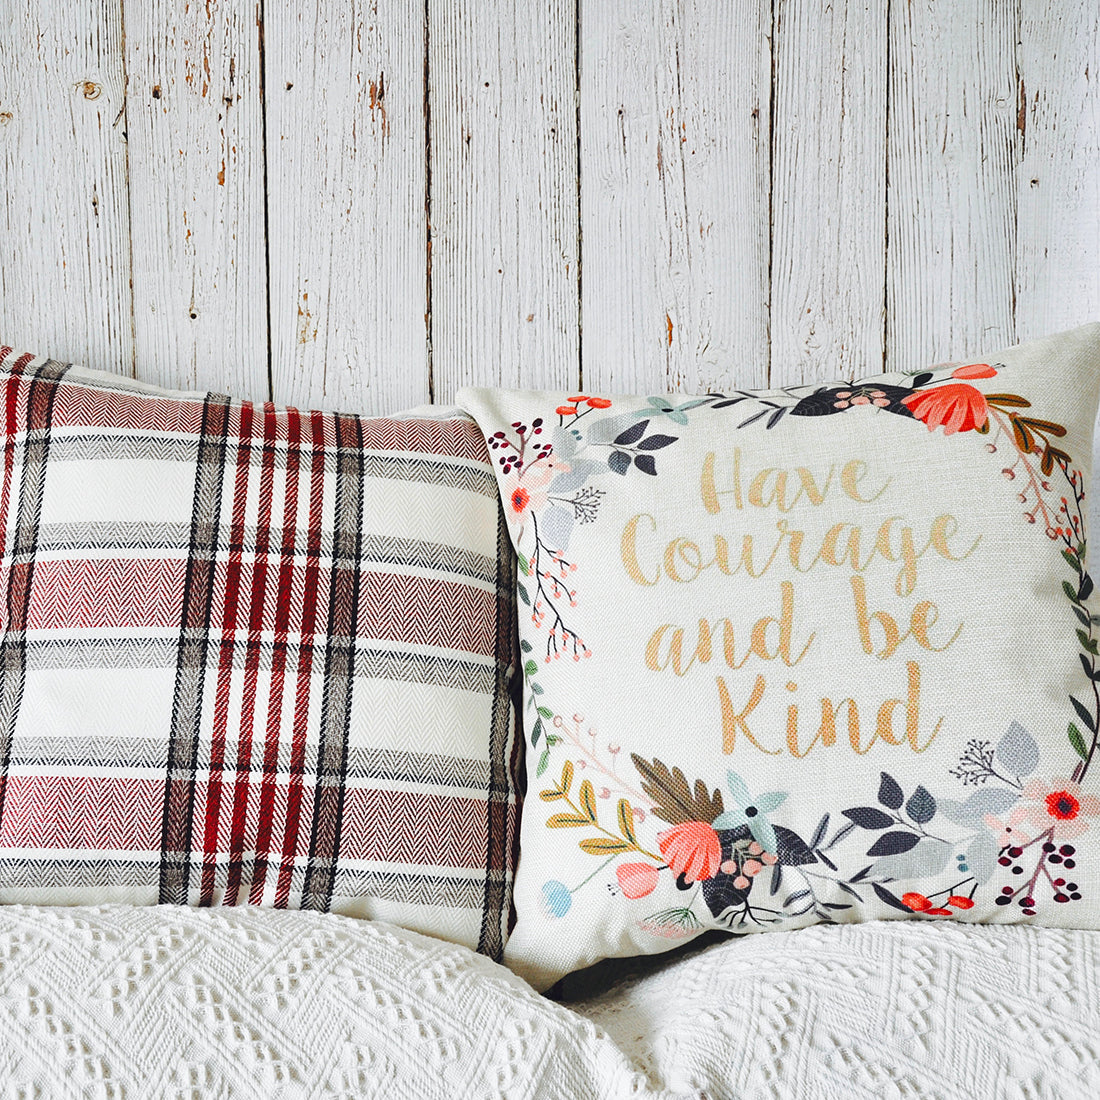 PANDICORN Set of 2 Farmhouse Decorative Throw Pillows Covers, Rustic Red Black White Buffalo Plaid Throw Pillow Cases with Inspirational Quotes for Women Teen Girls, Have Courage Be Kind, 18x18